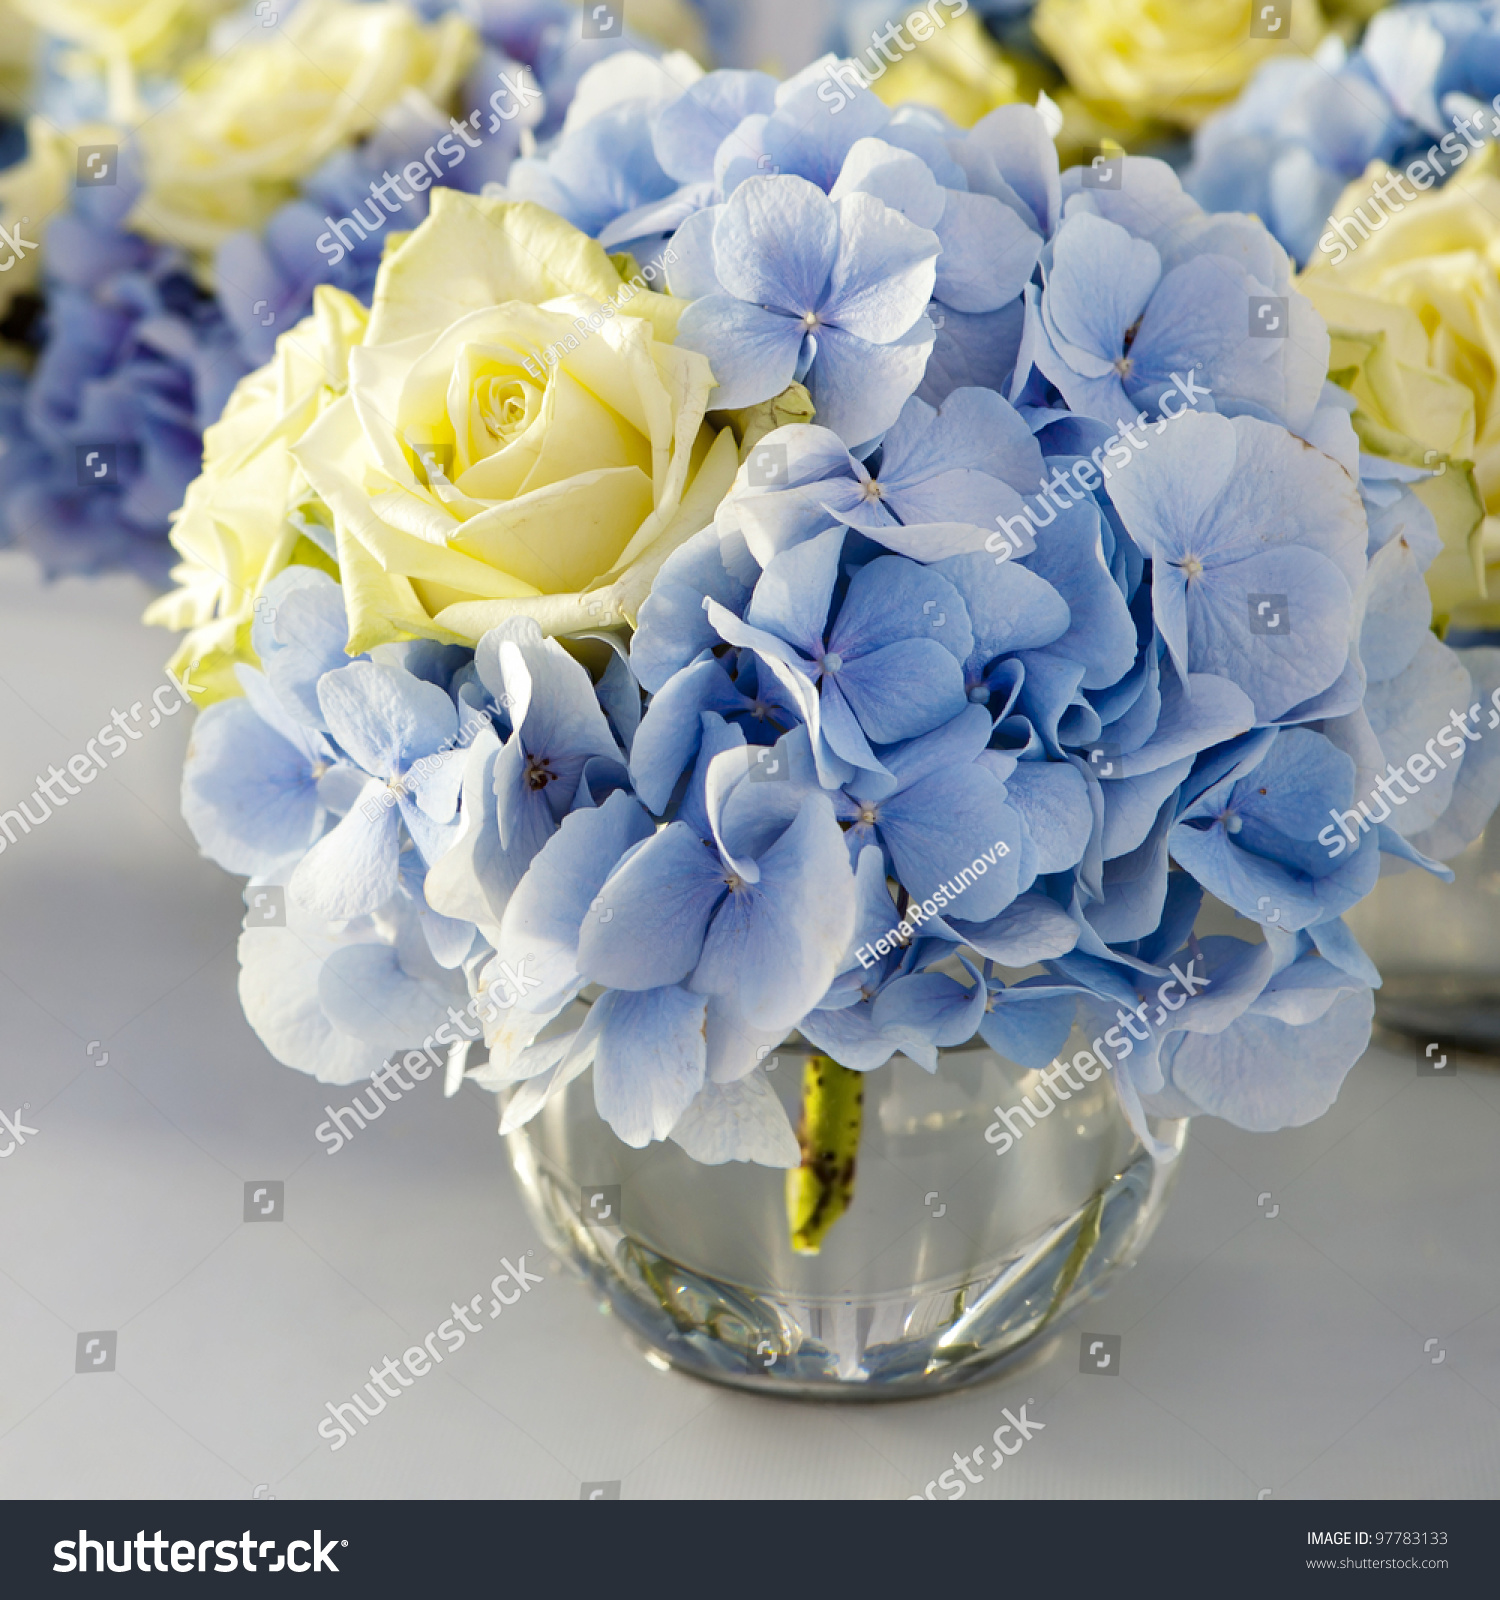 Bouquet white blue flower vase glass stock photo 97783133 bouquet of white and blue flower in vase of glass decoration of dining table dhlflorist Gallery